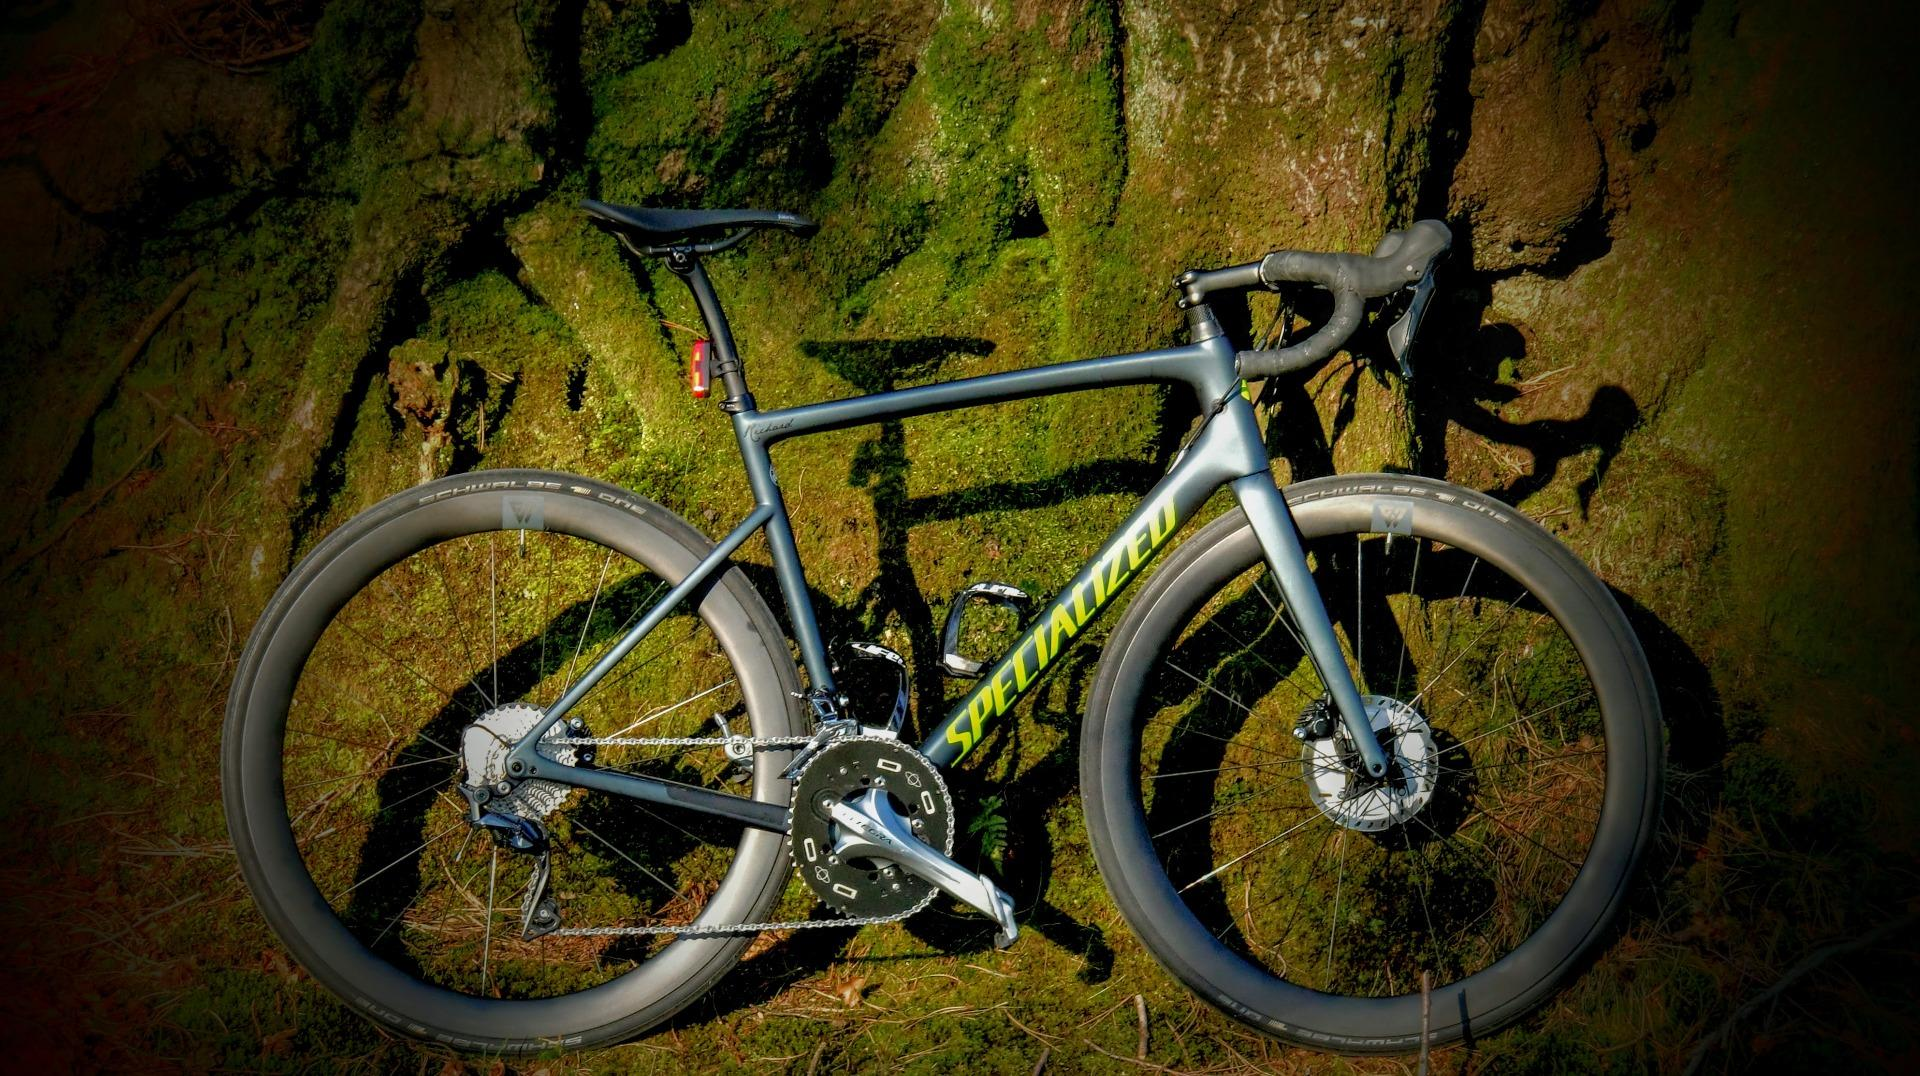 riding-solo-at-night-in-forest-on-specialized-performance-road-bike-with-Light-Bicycle-AR46-46mm-deep-aero-gravel-ud-matte-carbon-wheels